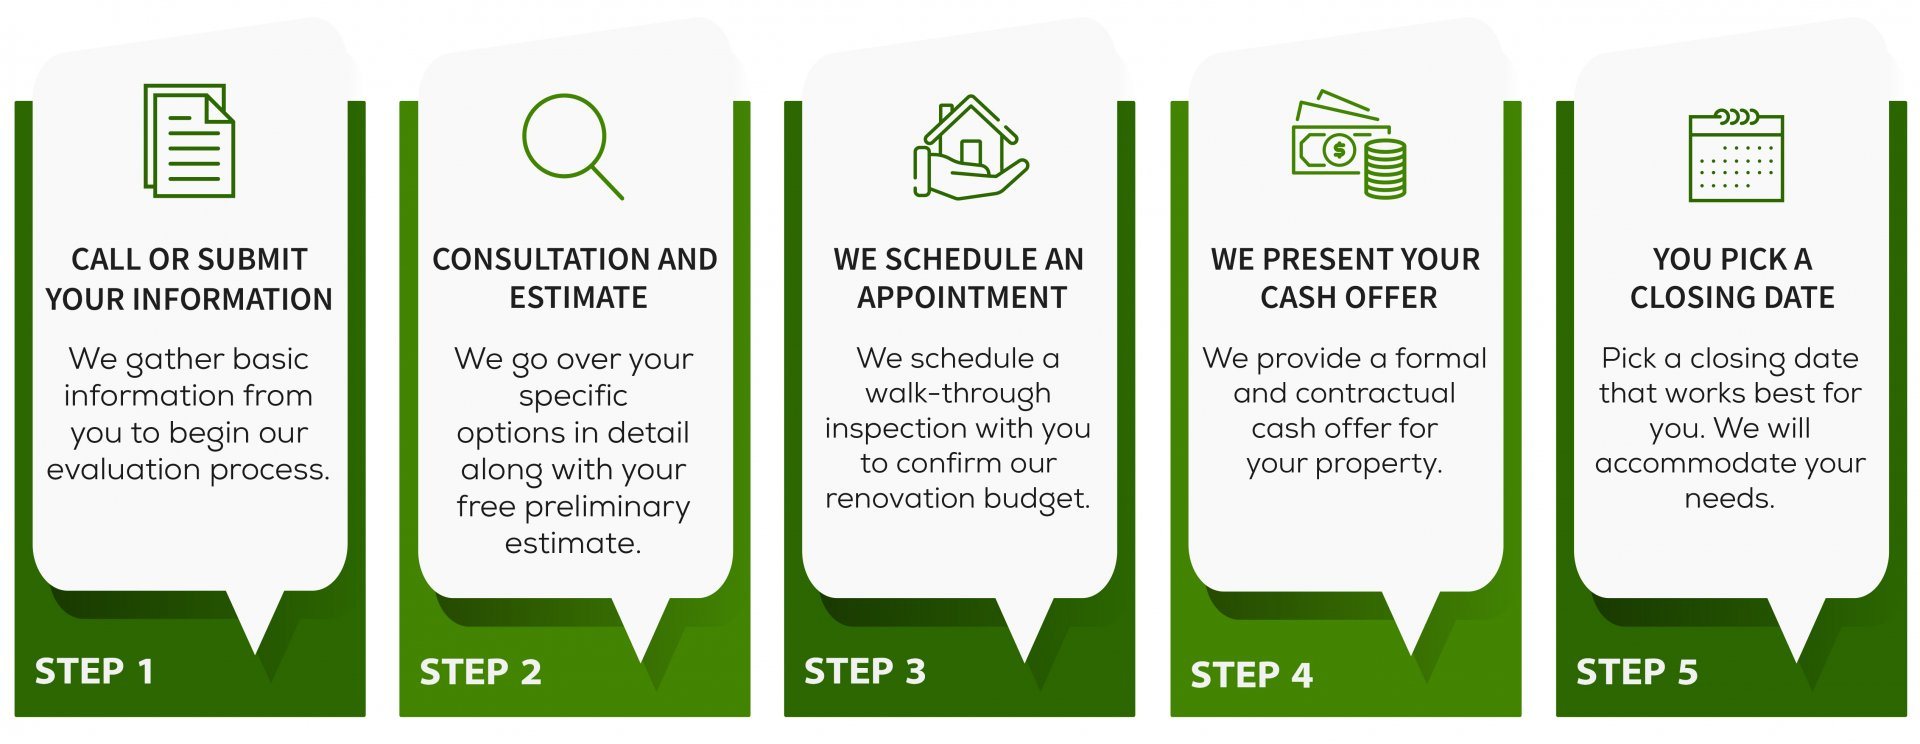 Halo Homebuyers home buying process